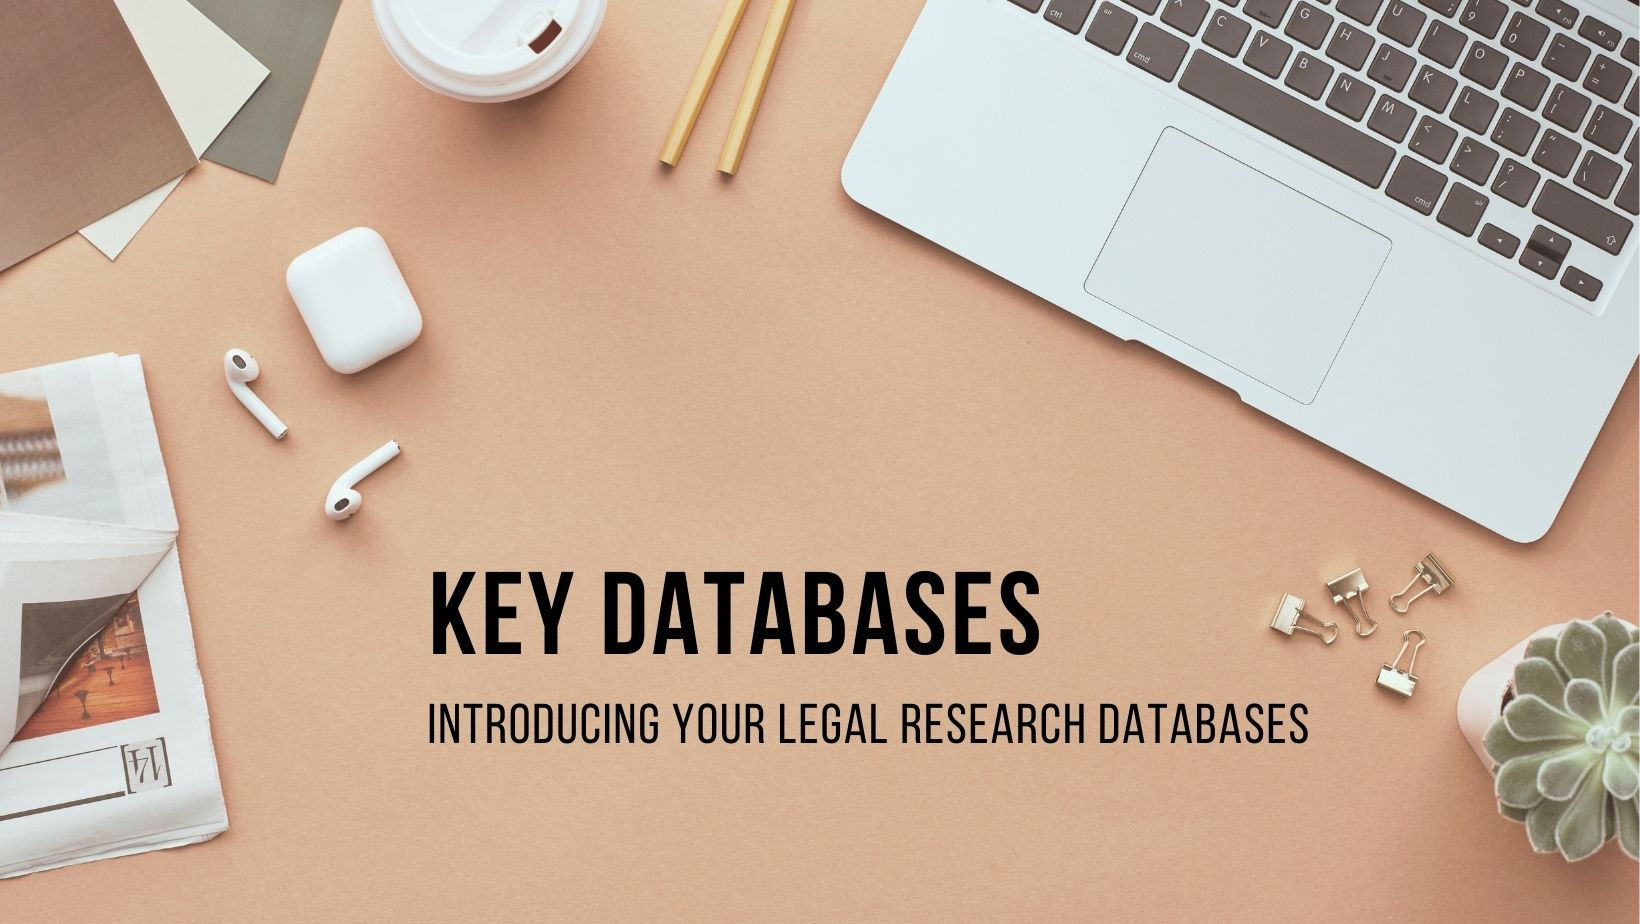 A pciture of a laptop, coffee and newspaper representing key legal databases